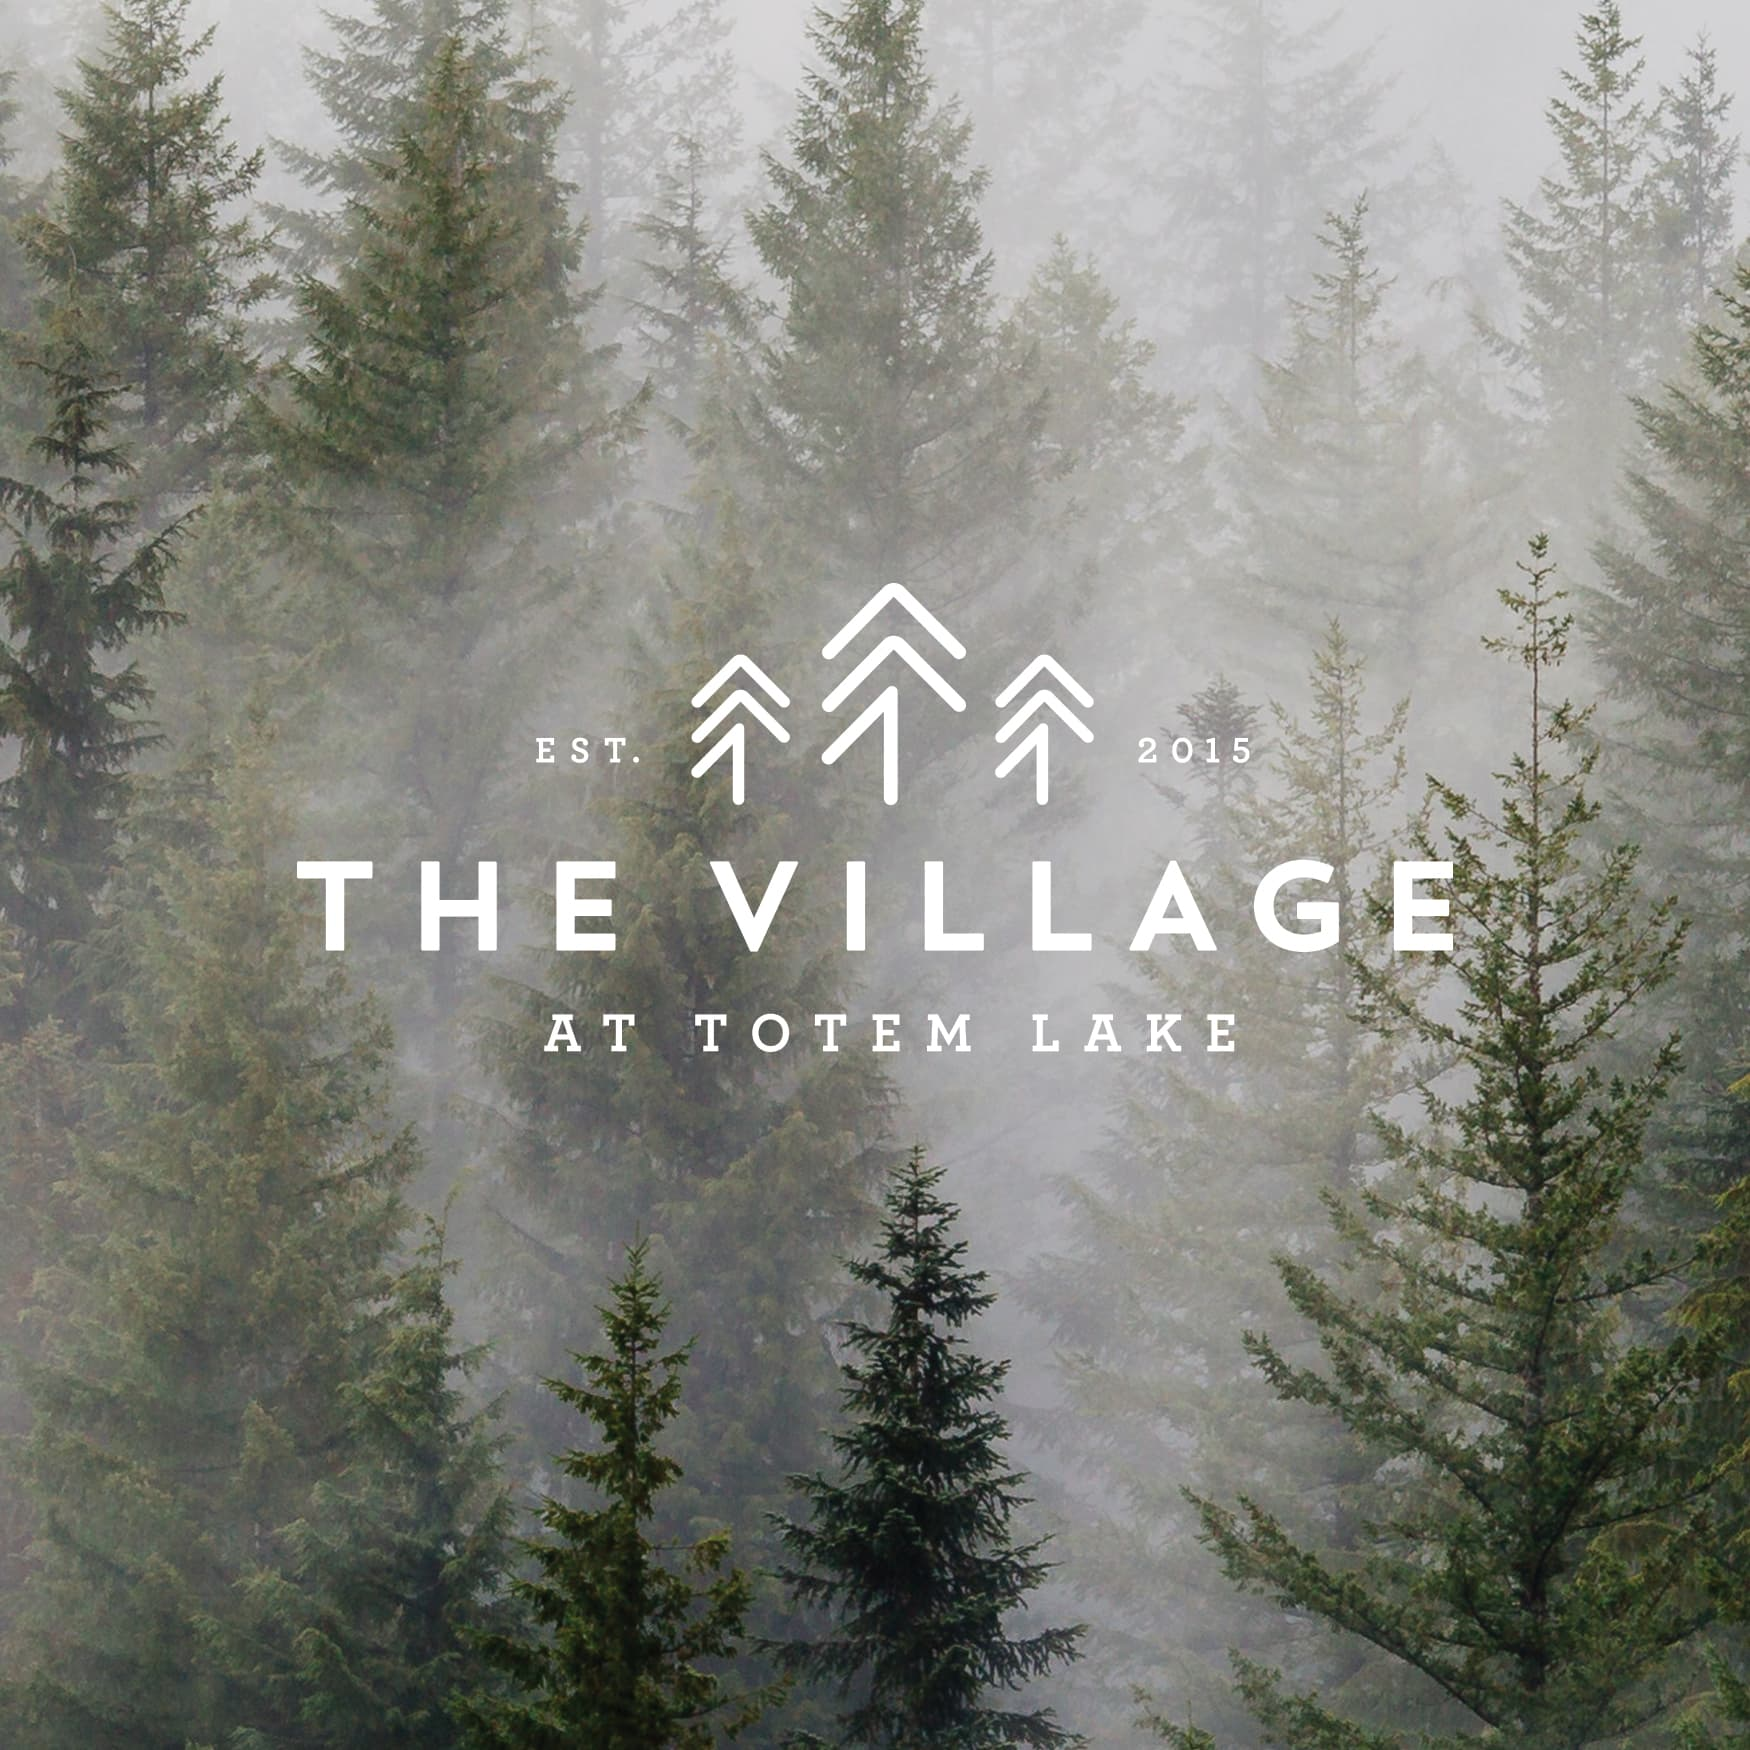 Tall green trees in a foggy mist in the background of logo design for THE VILLAGE